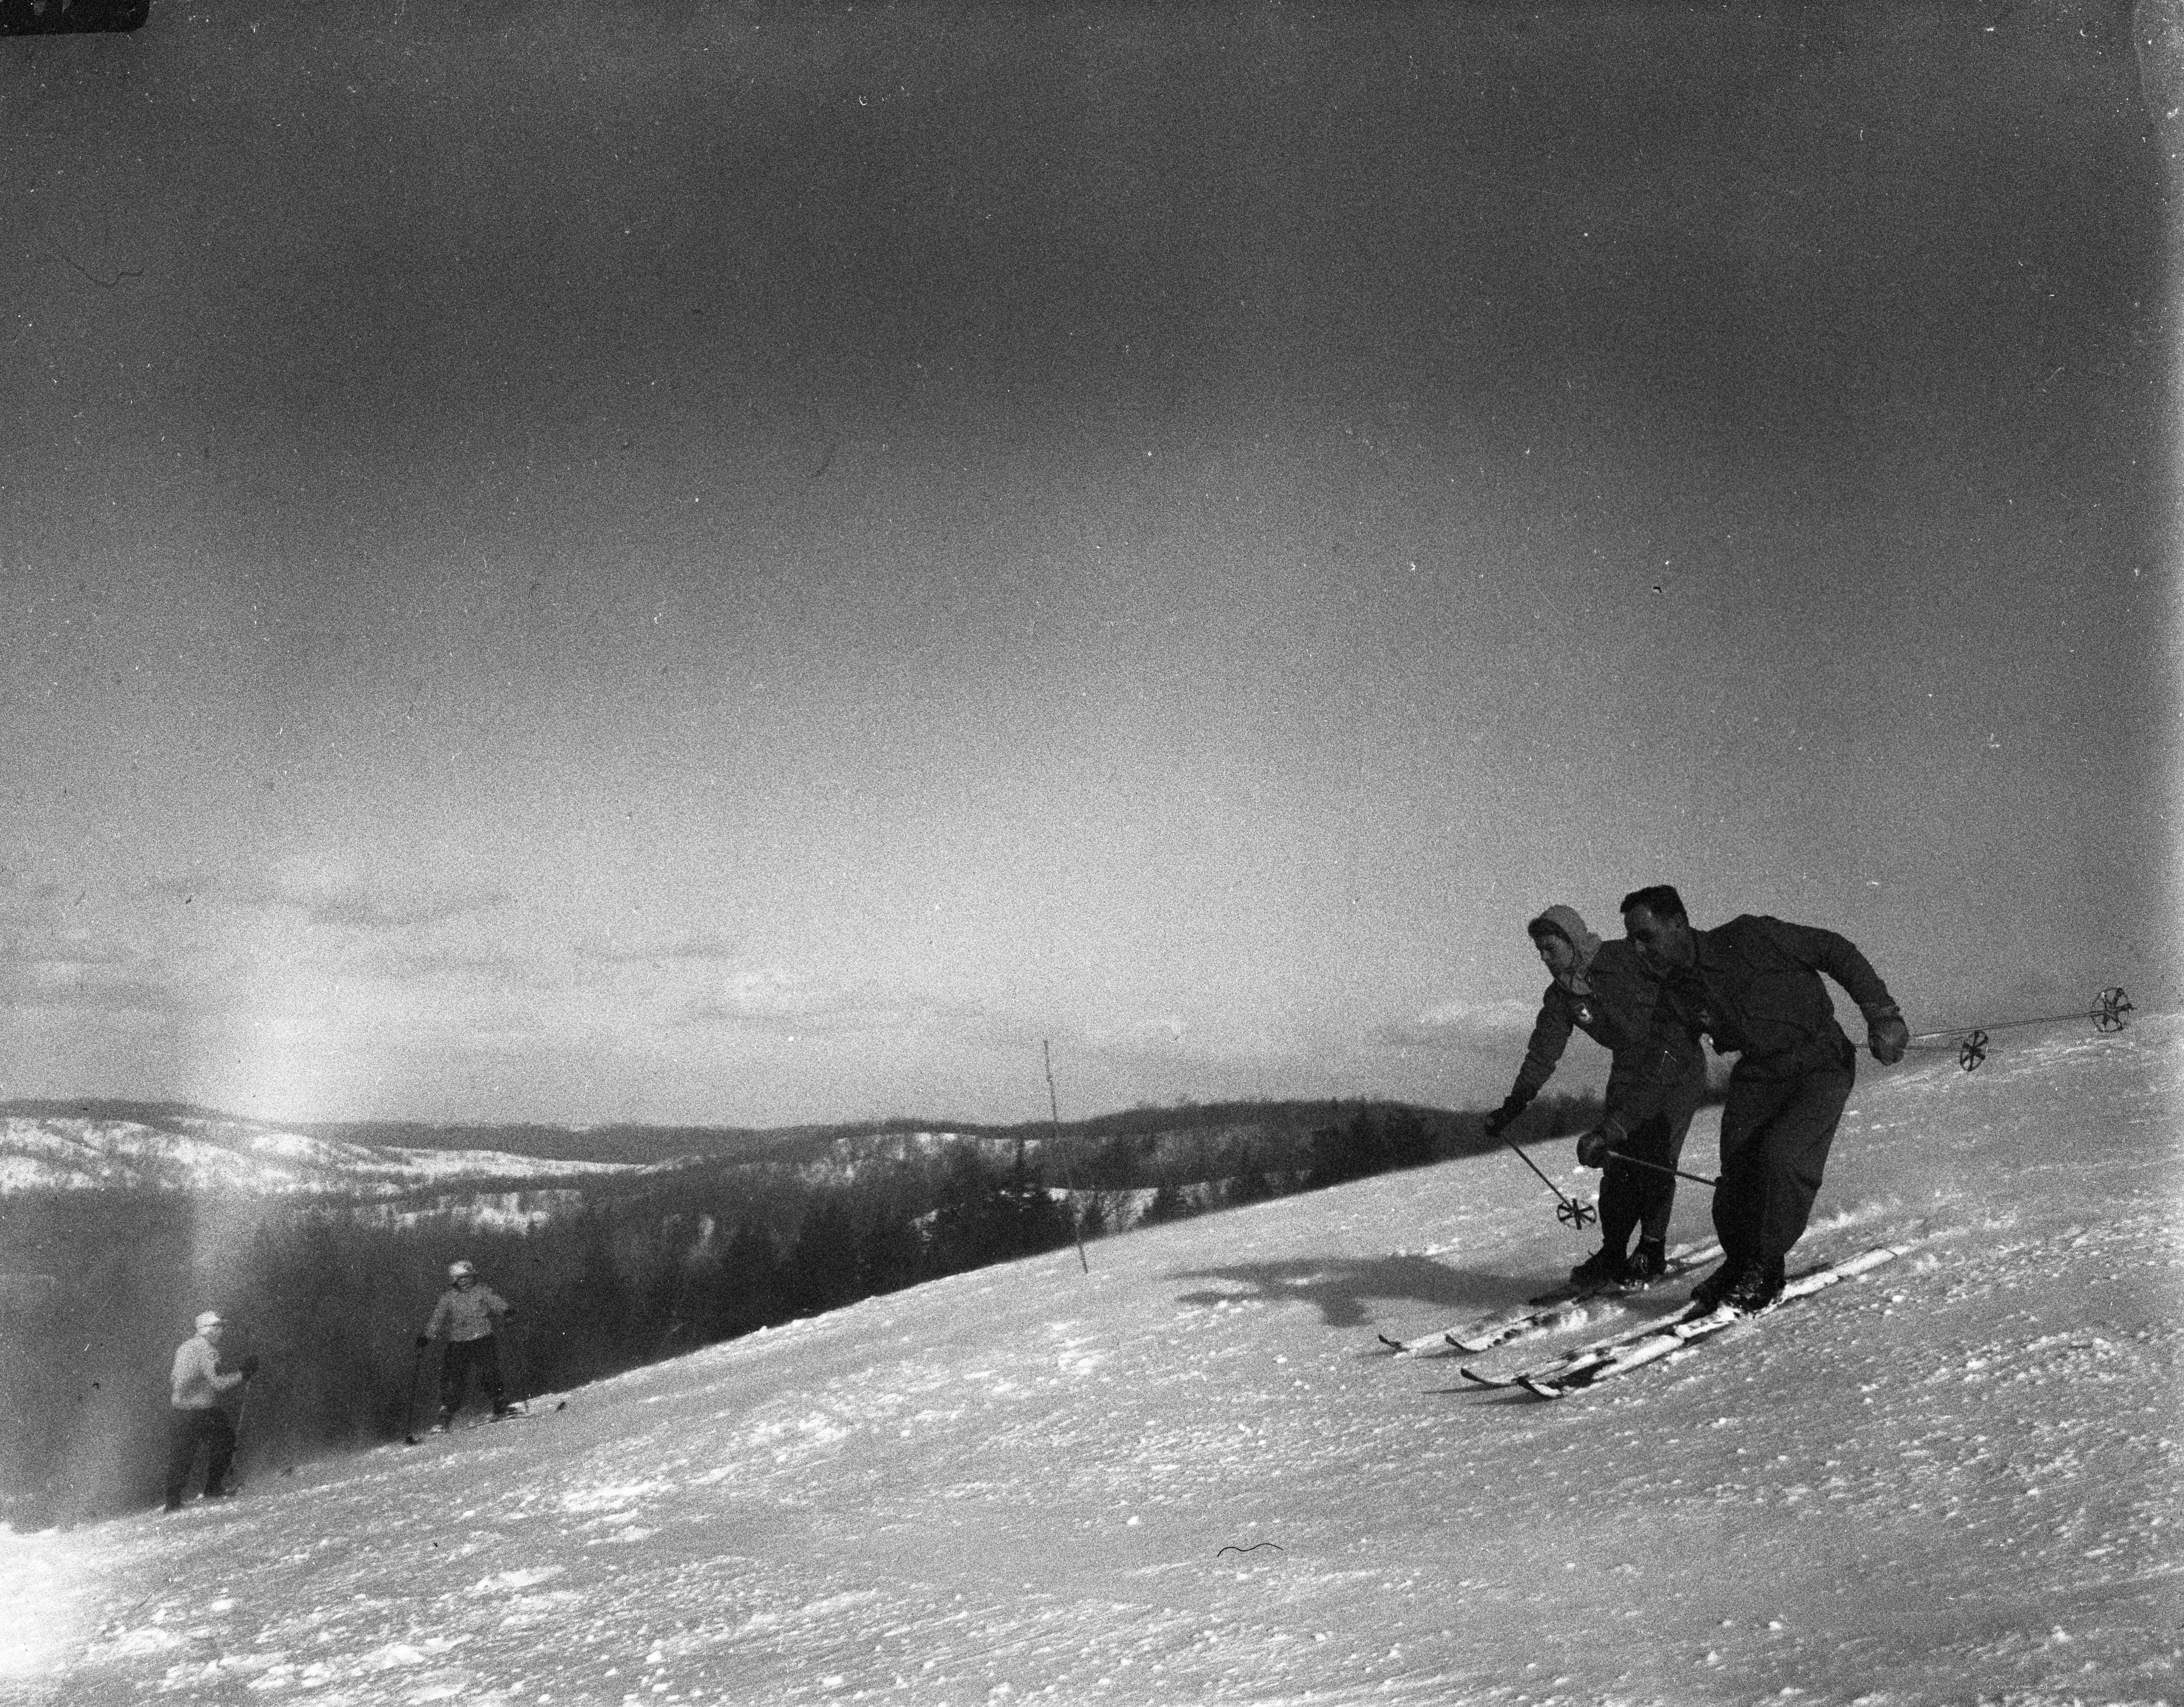 Alain And Stephanie Almon Skiing In Synchronization At The Otsego Club, February 1946 image